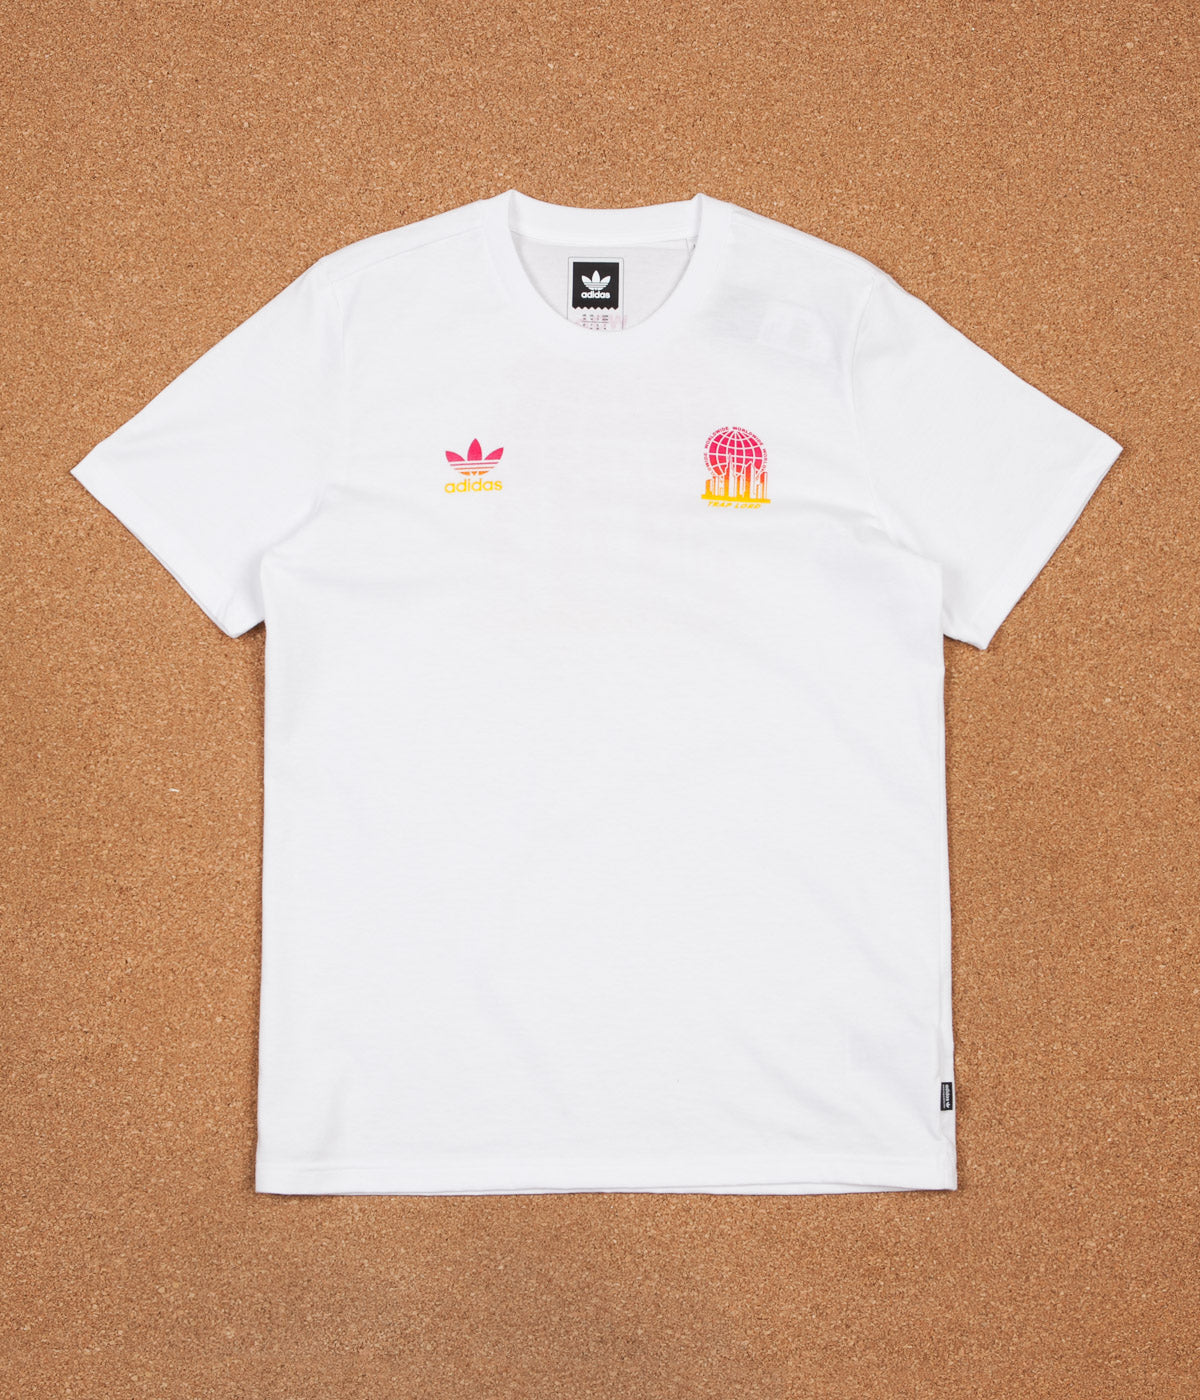 Adidas x Trap Lord Ferg T-Shirt - White / EQT Yellow / Bold Pink